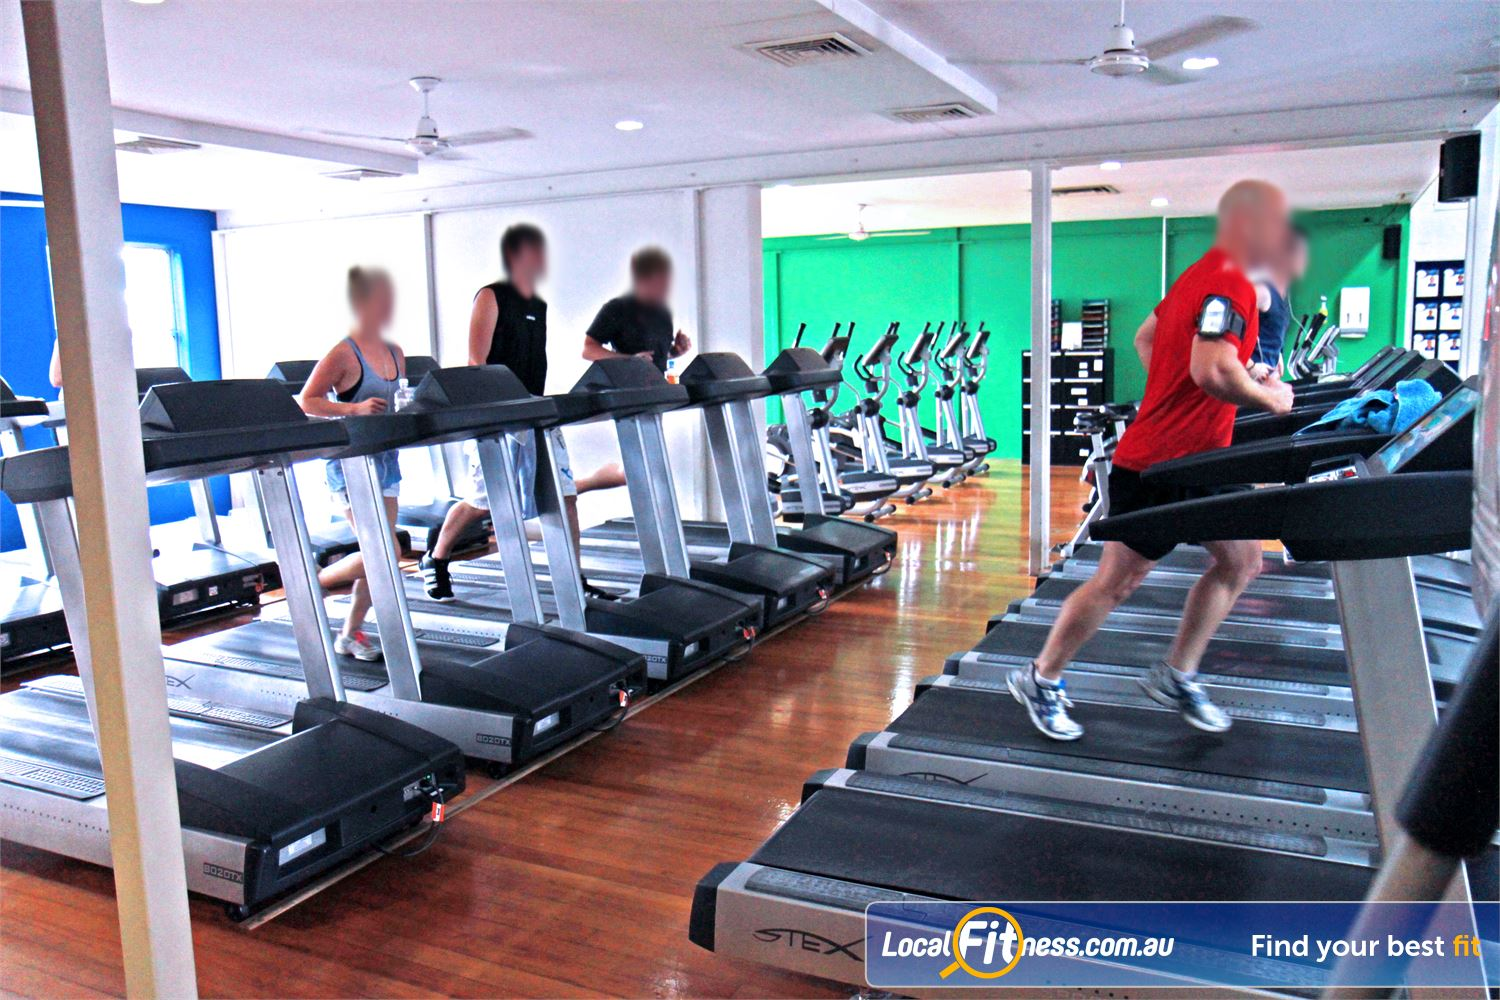 Goodlife Health Clubs Near Hawthorne Tune into your favorite shows on your personalised LCD screen or cardio theatre.